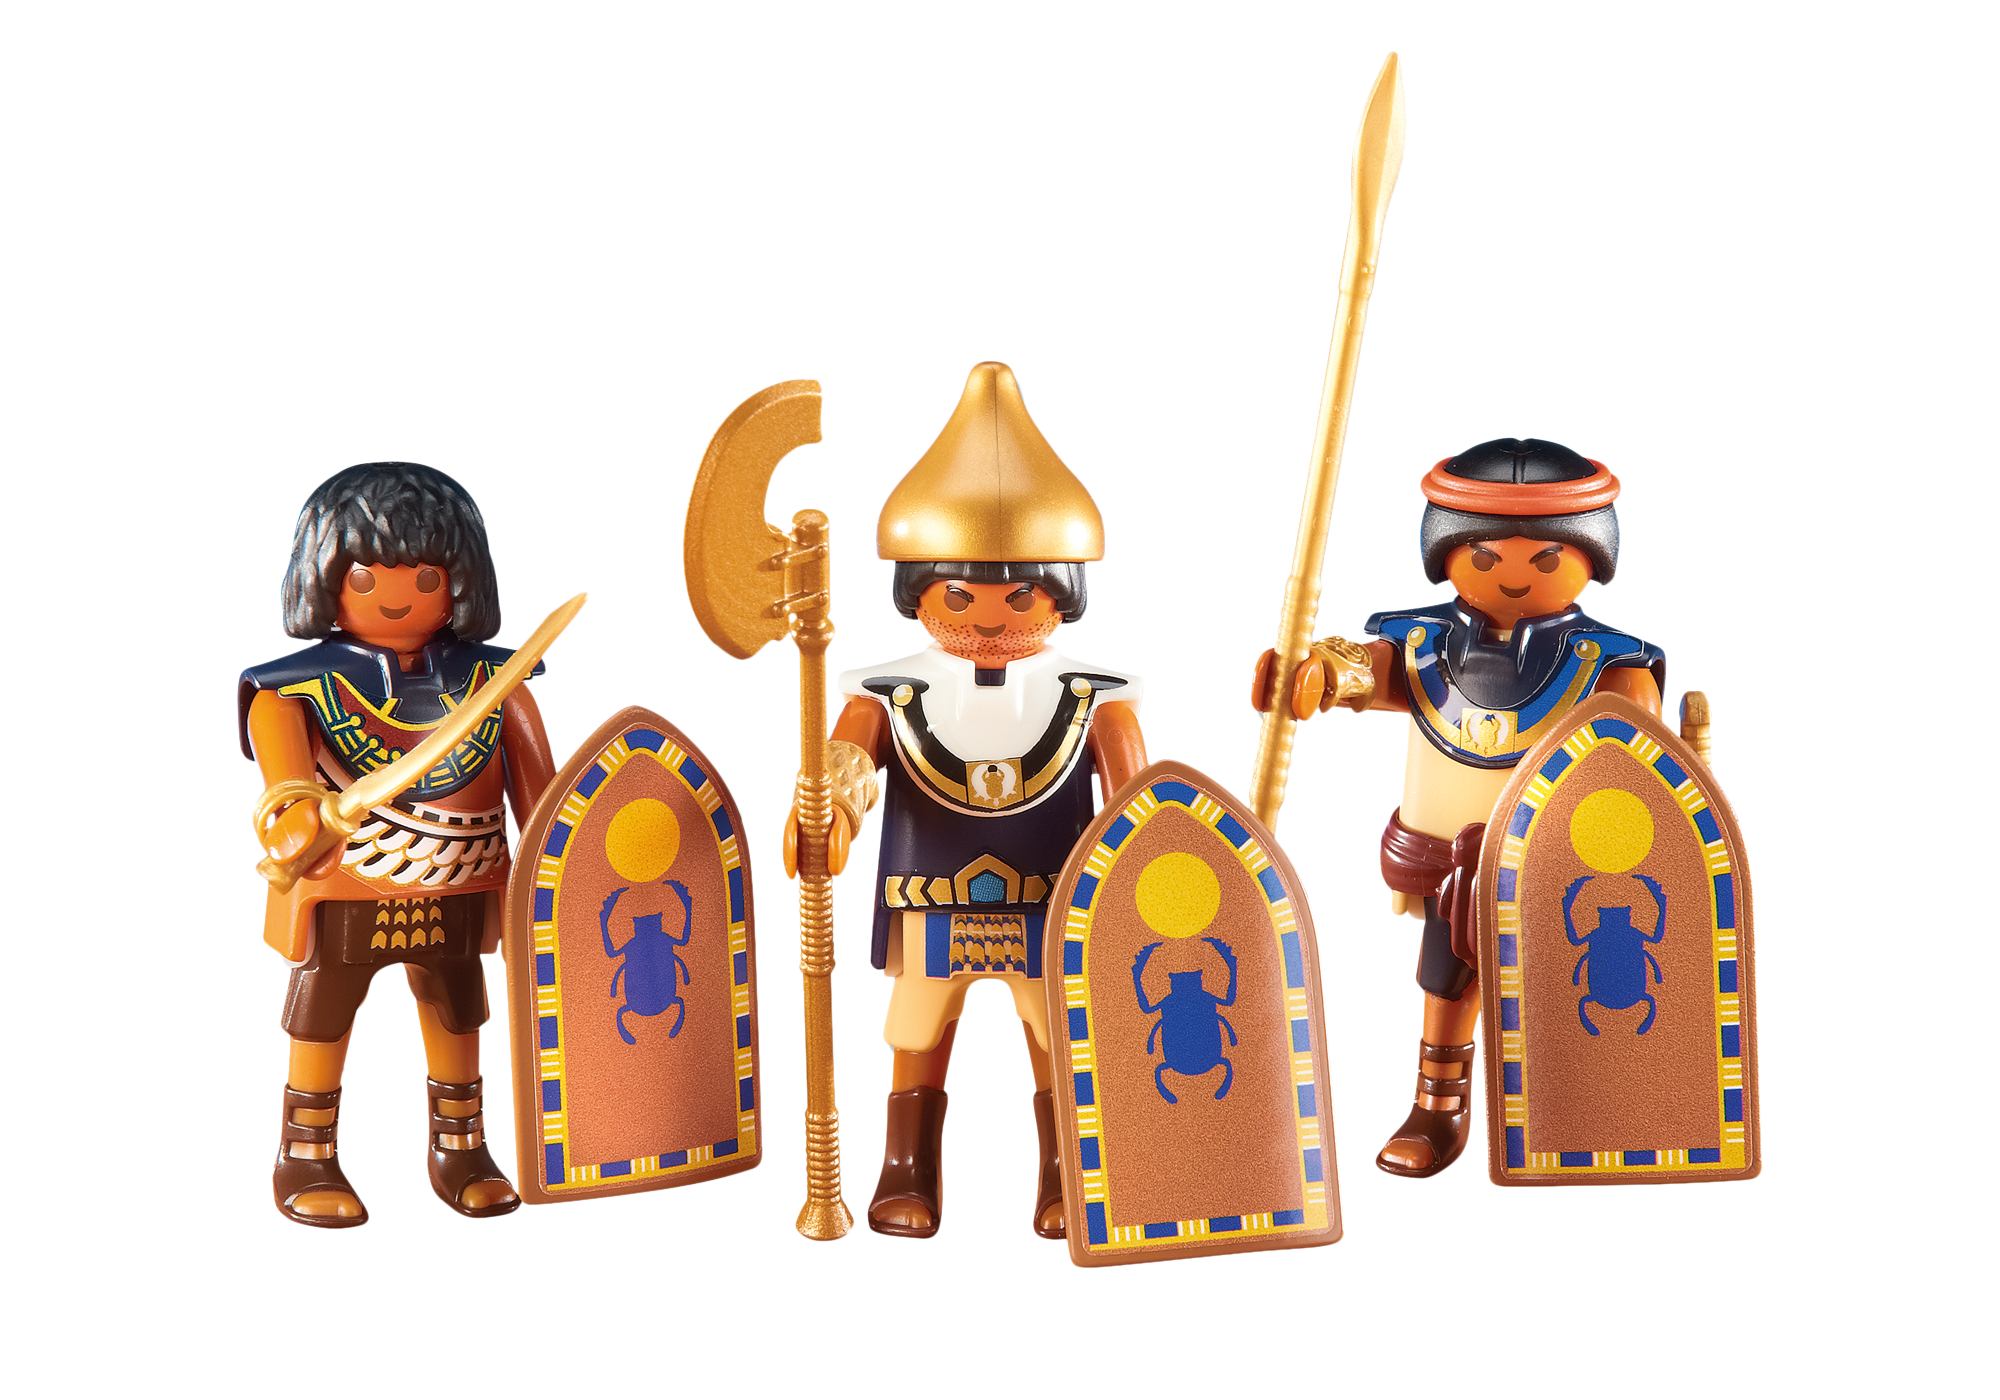 http://media.playmobil.com/i/playmobil/6488_product_detail/3 Egyptian Soldiers